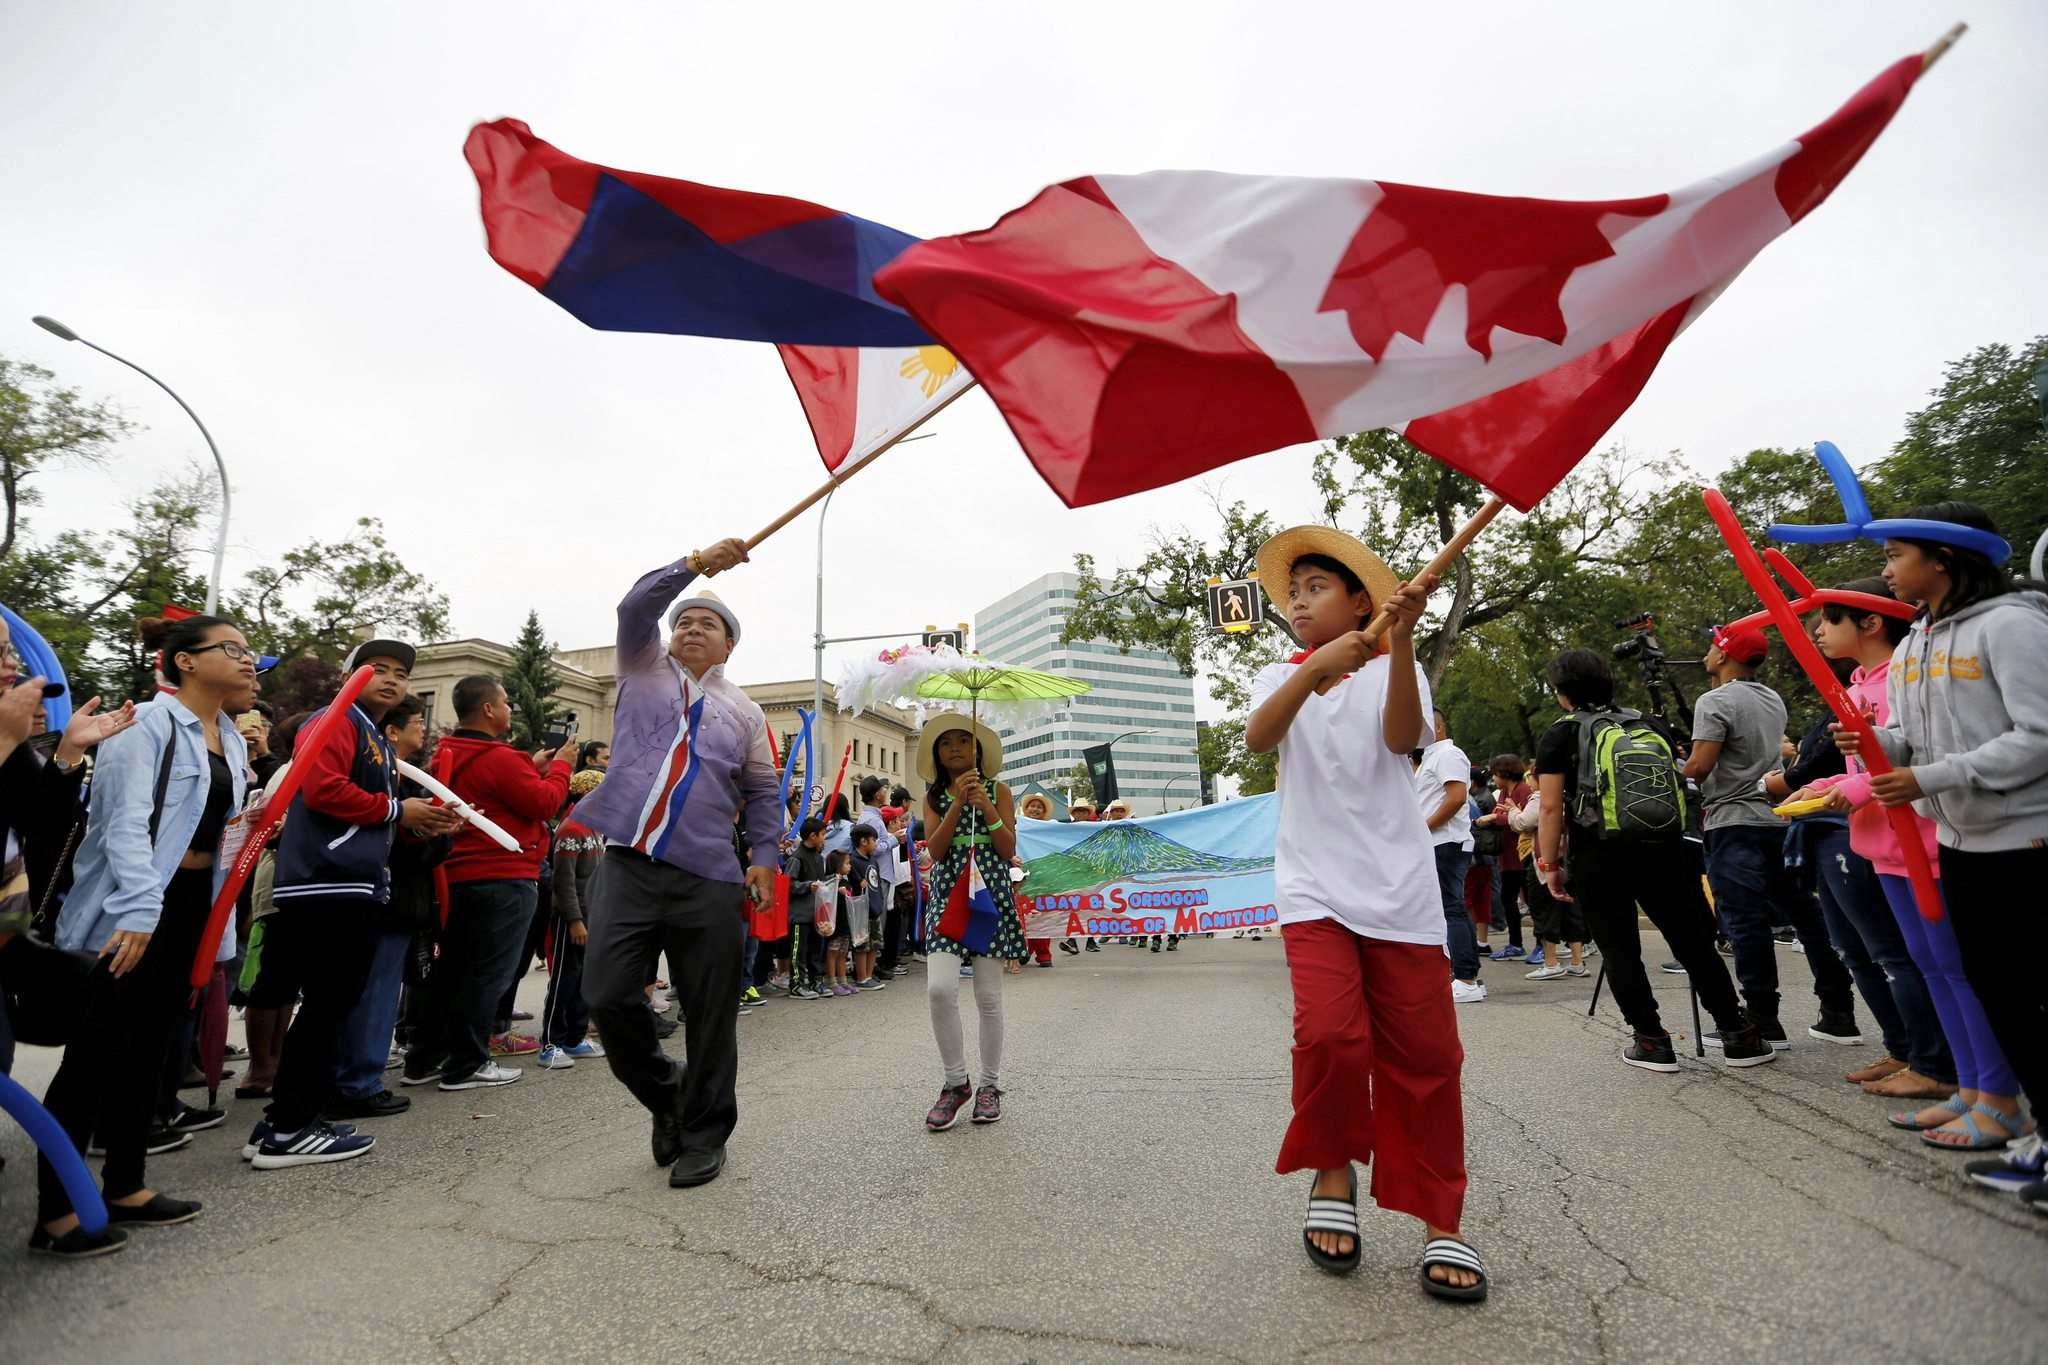 PHOTOS BY JUSTIN SAMANSKI-LANGILLE / WINNIPEG FREE PRESS</p><p>Downtown streets were alive Saturday as members of Manitoba's Filipino community joined together to take part in the Manitoba Filipino Street Festival.</p>